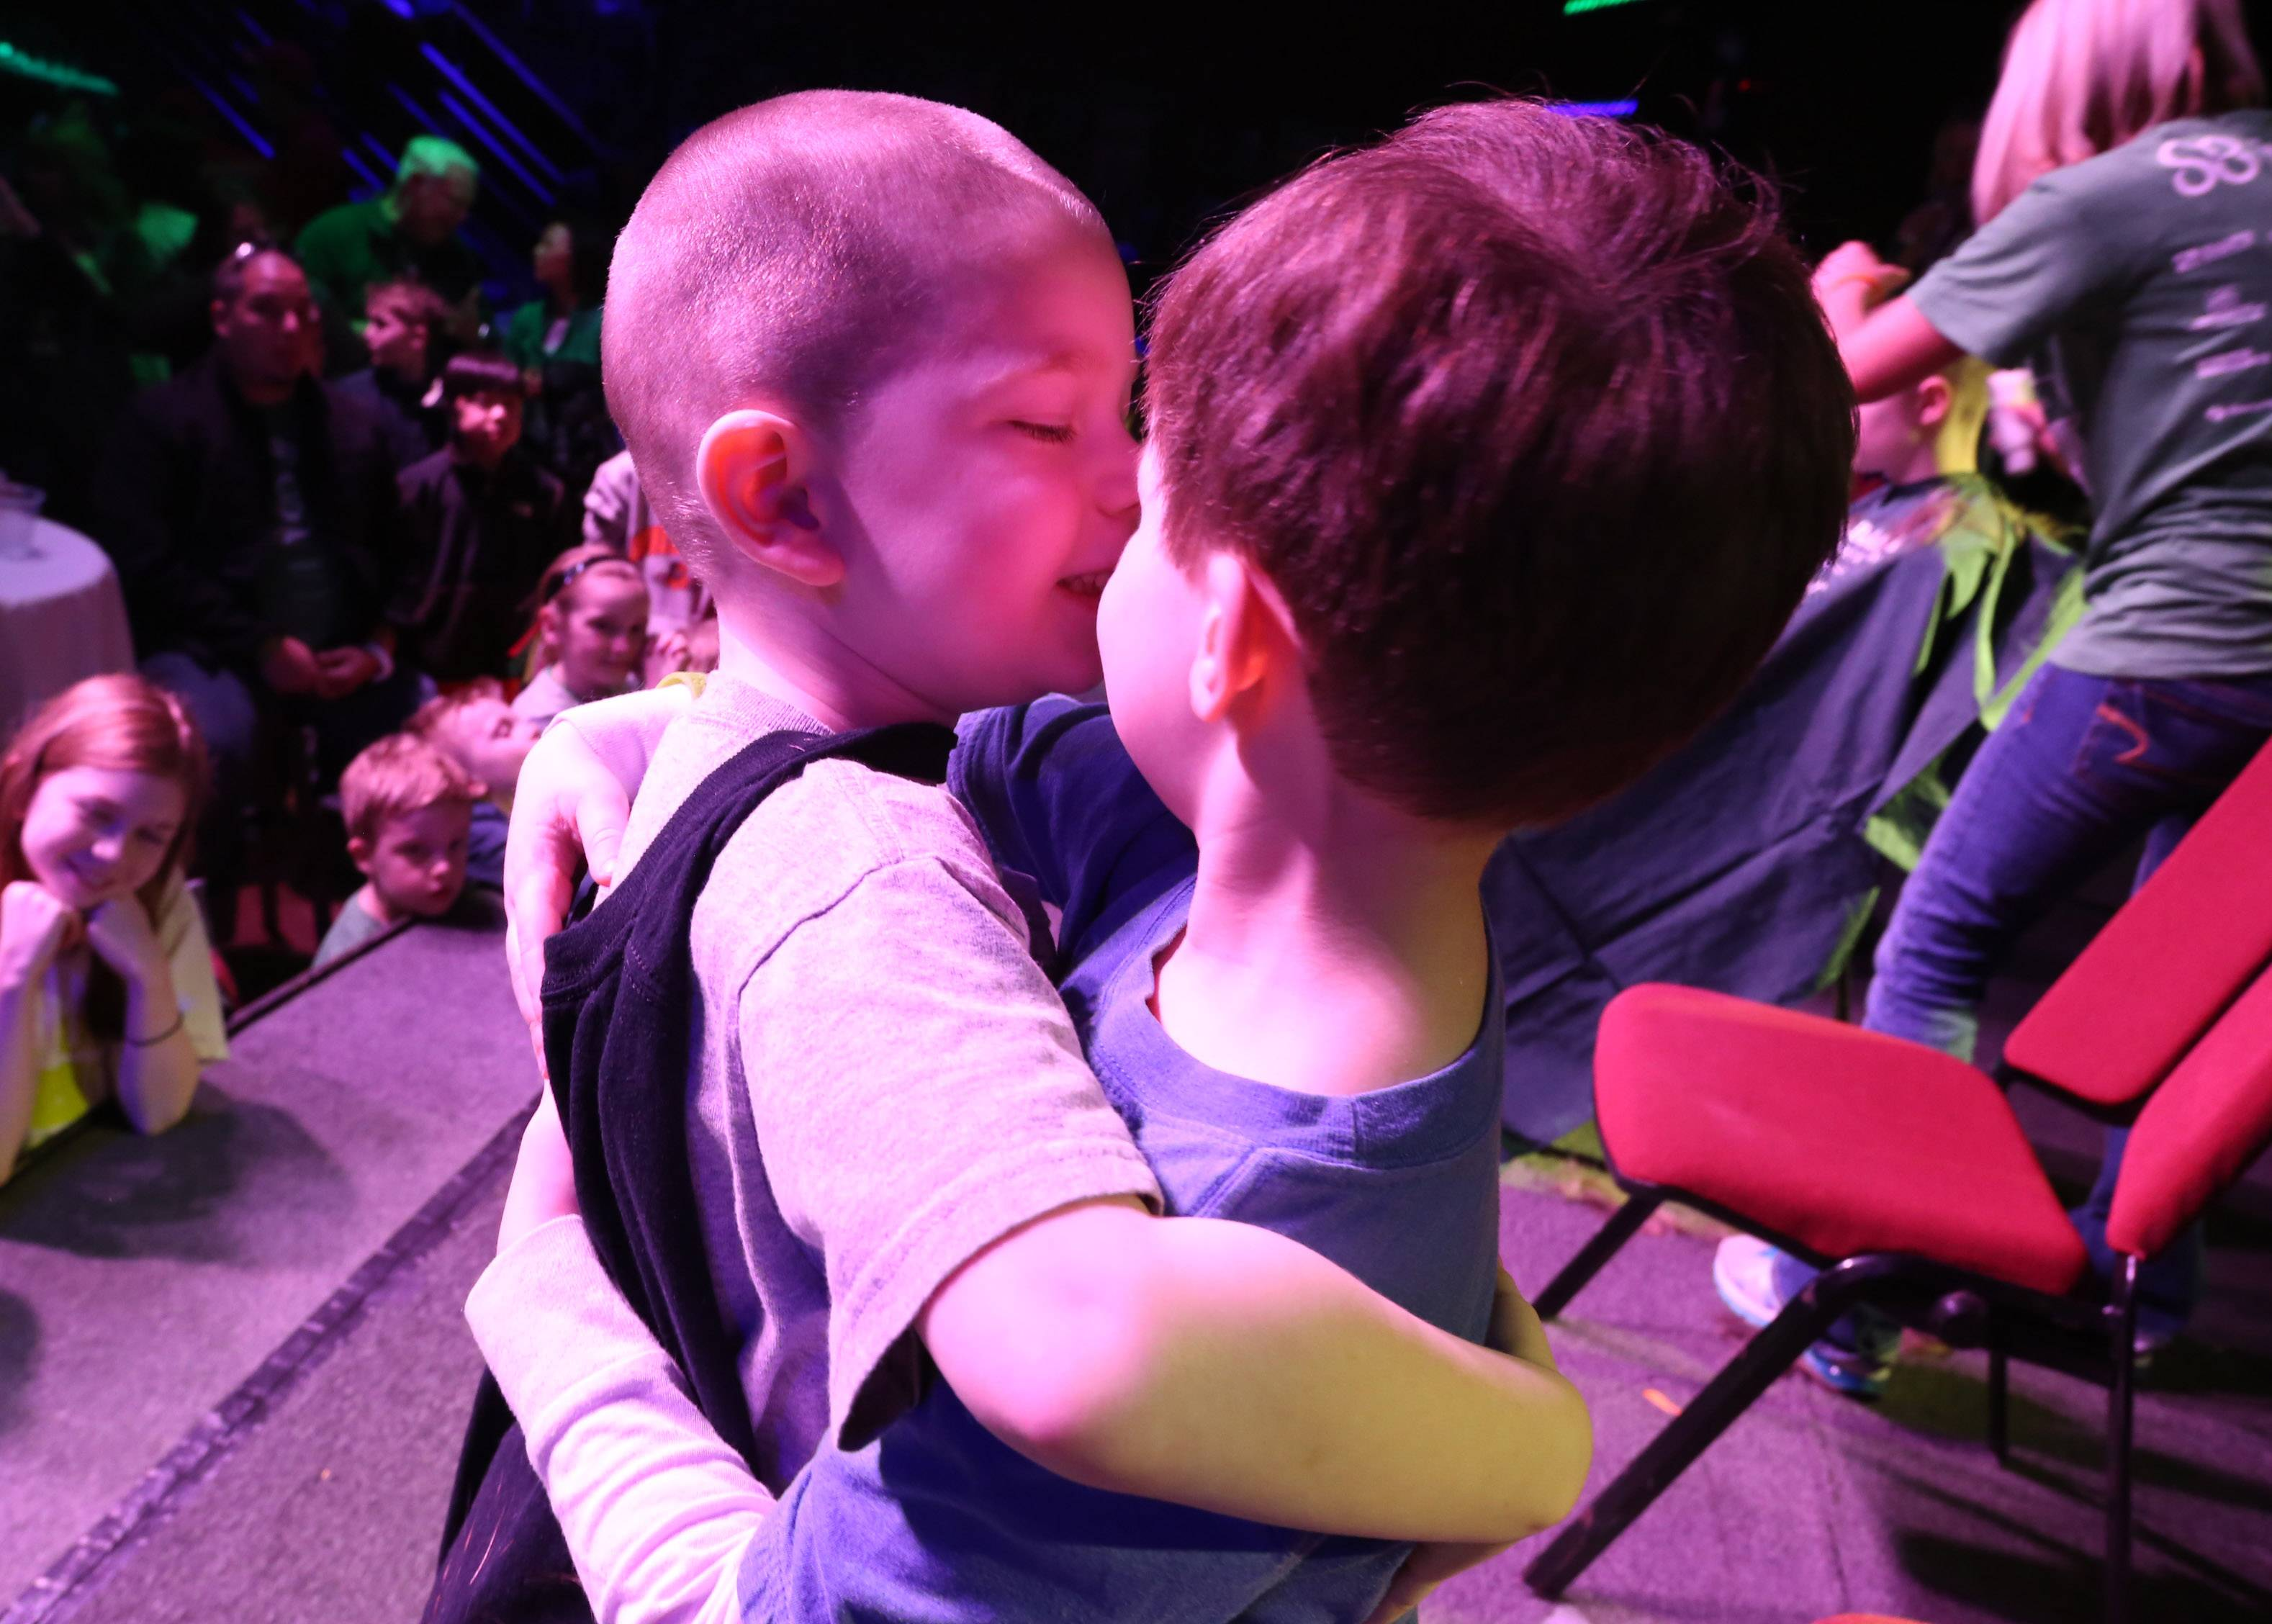 Six-year-old Connor Johnson, a 2001 cancer survivor of Libertyville, right, gets a hug from friend Luke Steres, 4, of Gurnee, after Connor shaved Luke's head during a St. Baldrick's Foundation event at Austin's Saloon and Eatery on Saturday in Libertyville.